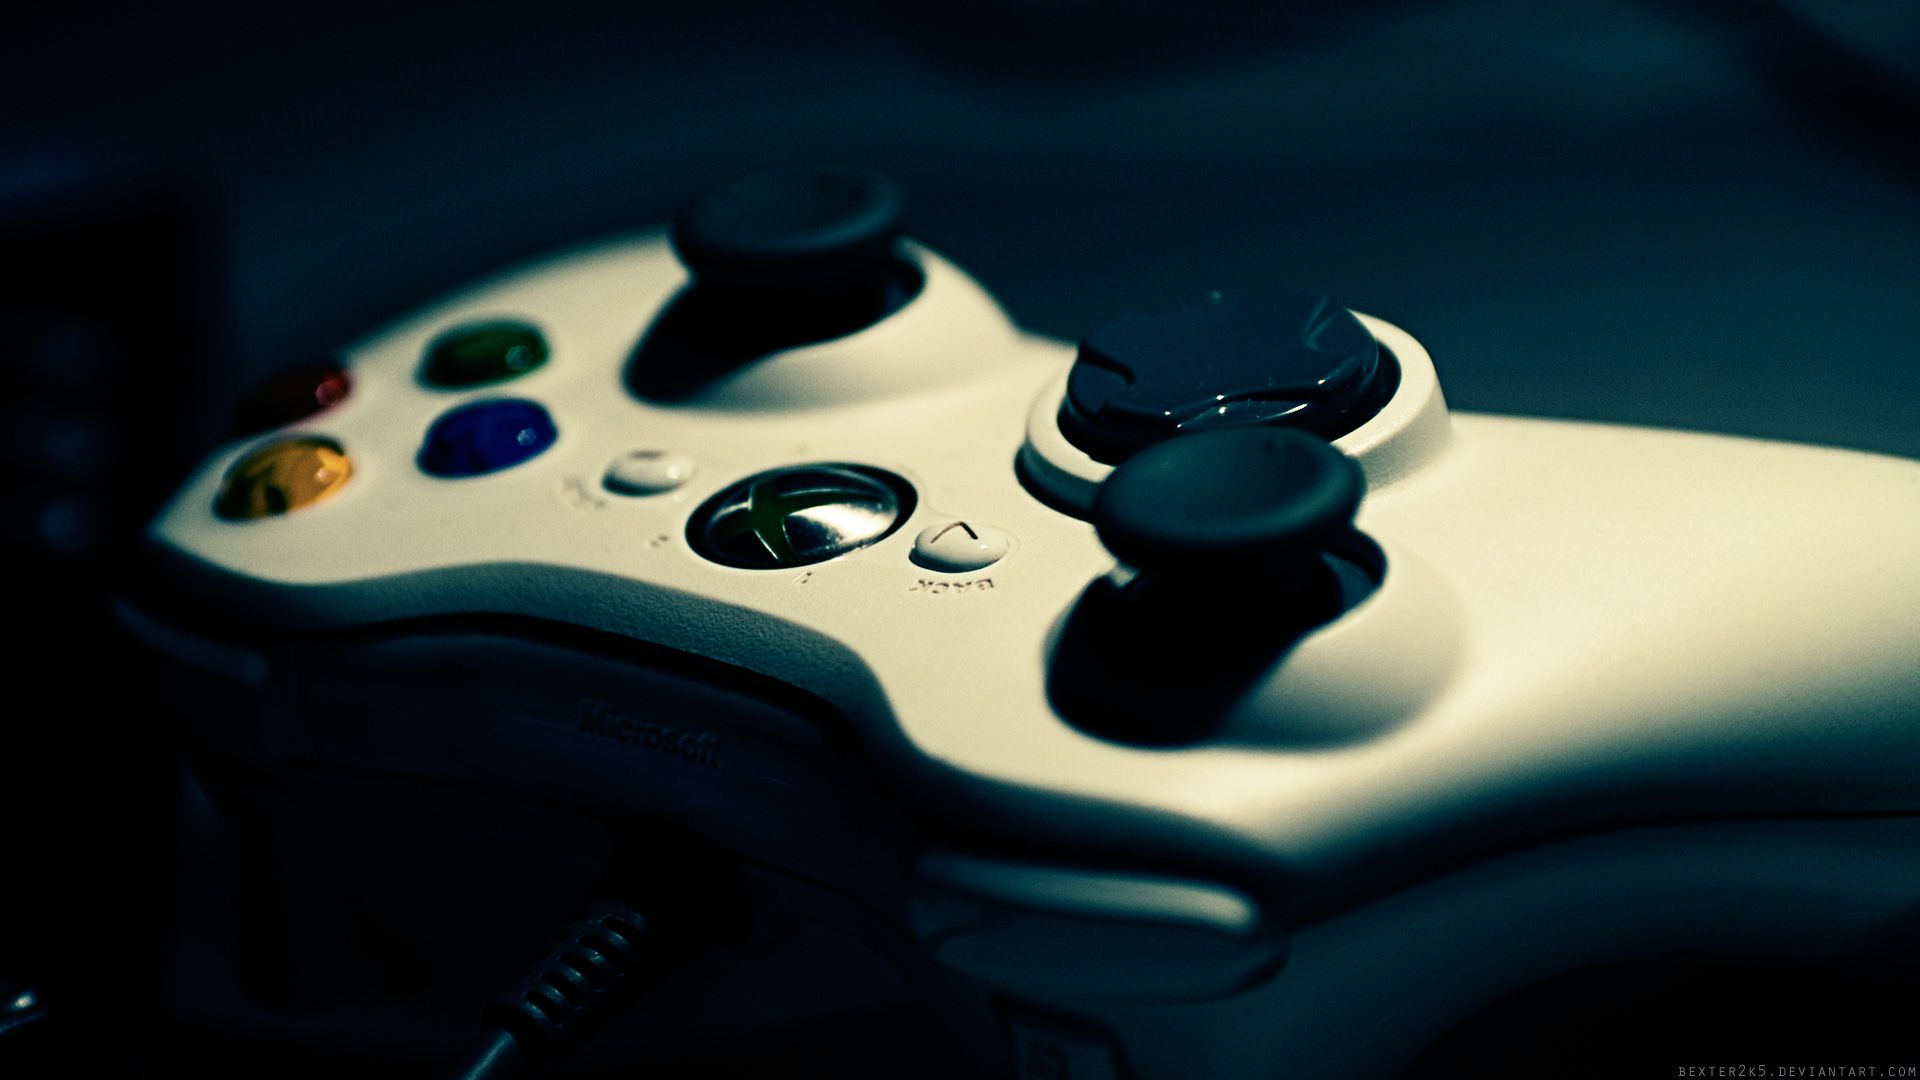 xbox 360 game controller video games wallpaper picture on visualizeus